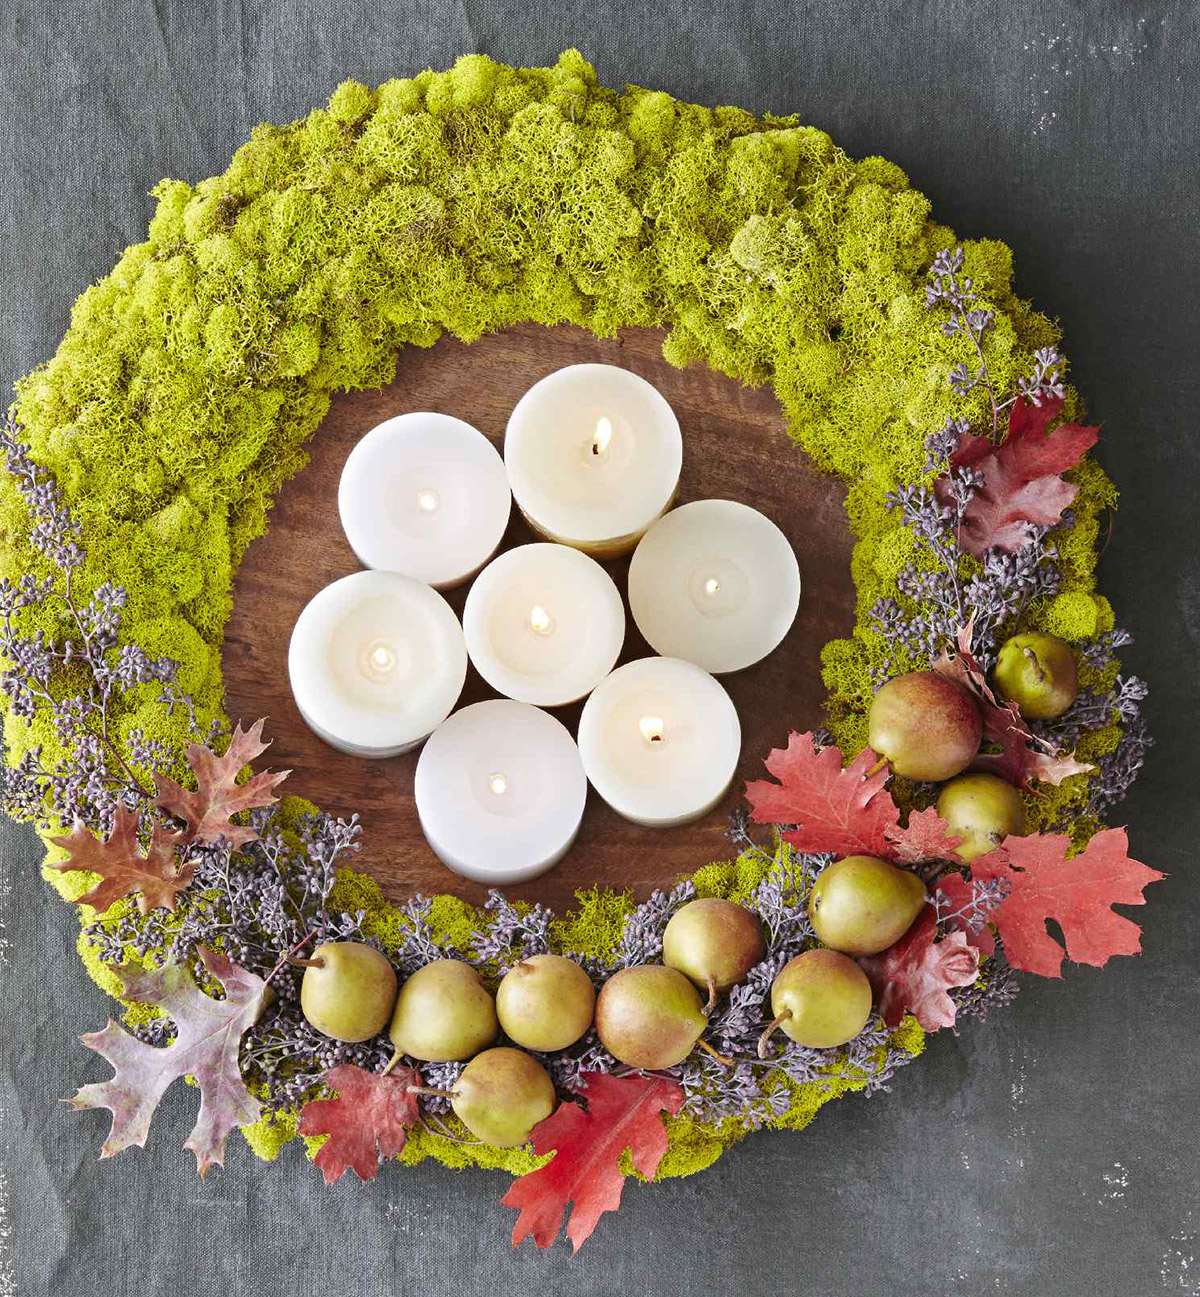 DIY green moss wreath used as seasonal centerpiece on table with candles